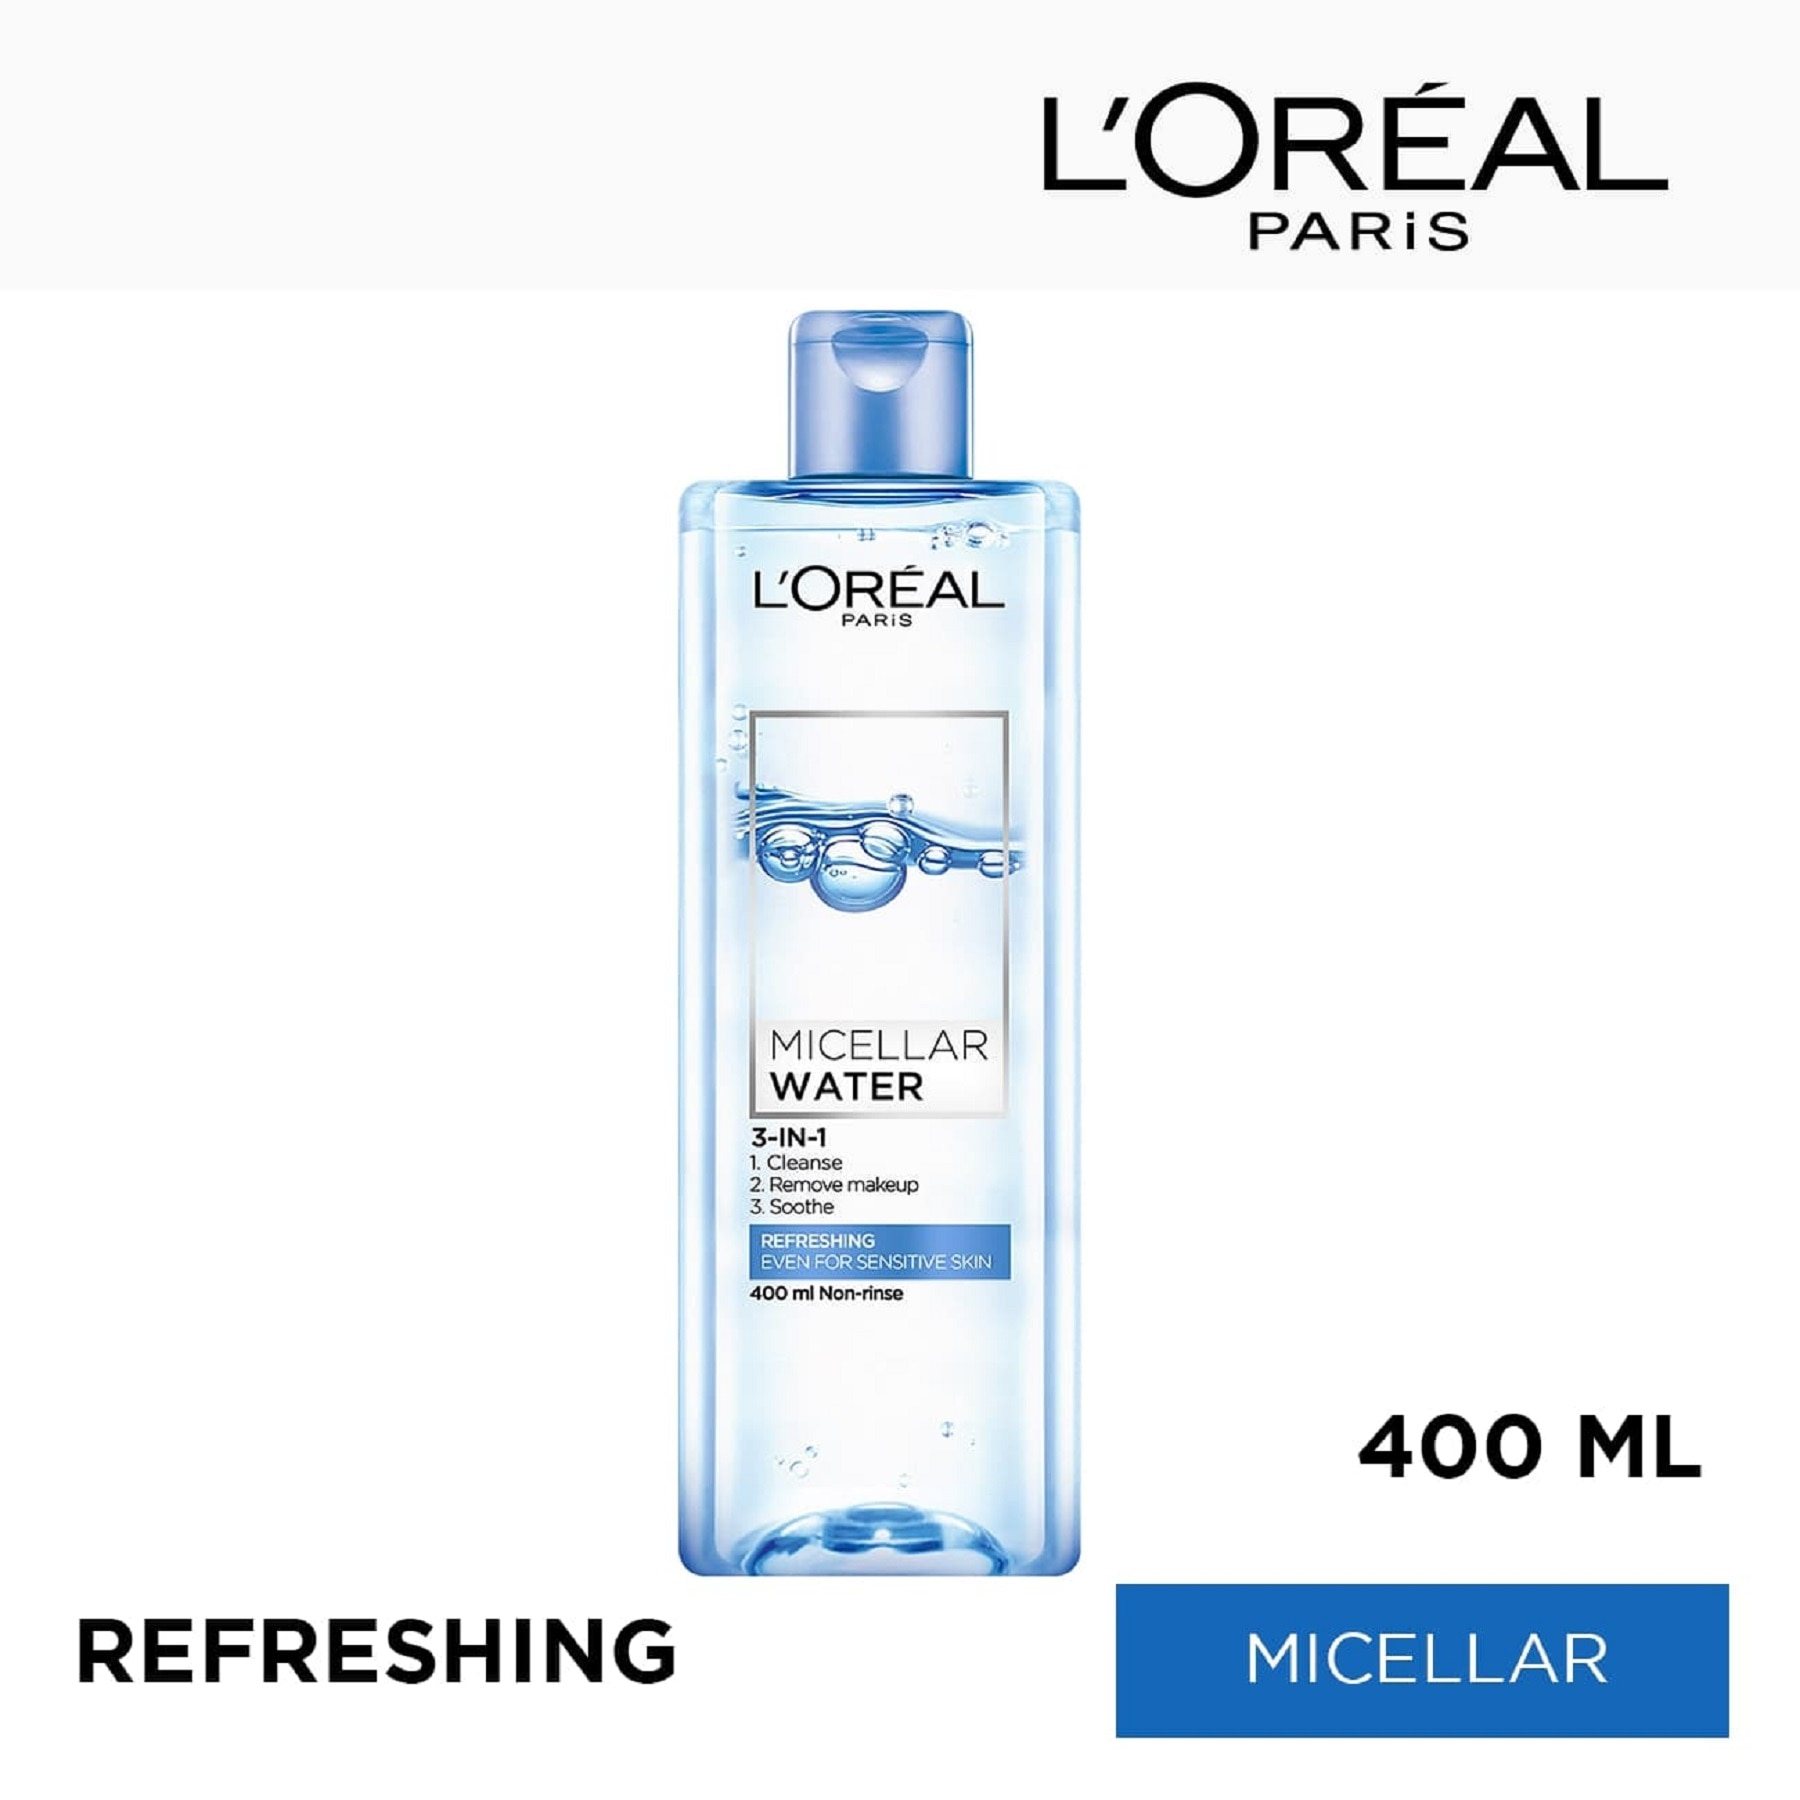 LOREALParis Micellar Water - Refreshing (Blue) 400mL,For WomenFree (1) Watsons Dermaction Plus Antiacne St20x2 for every purchase of Skin Care products